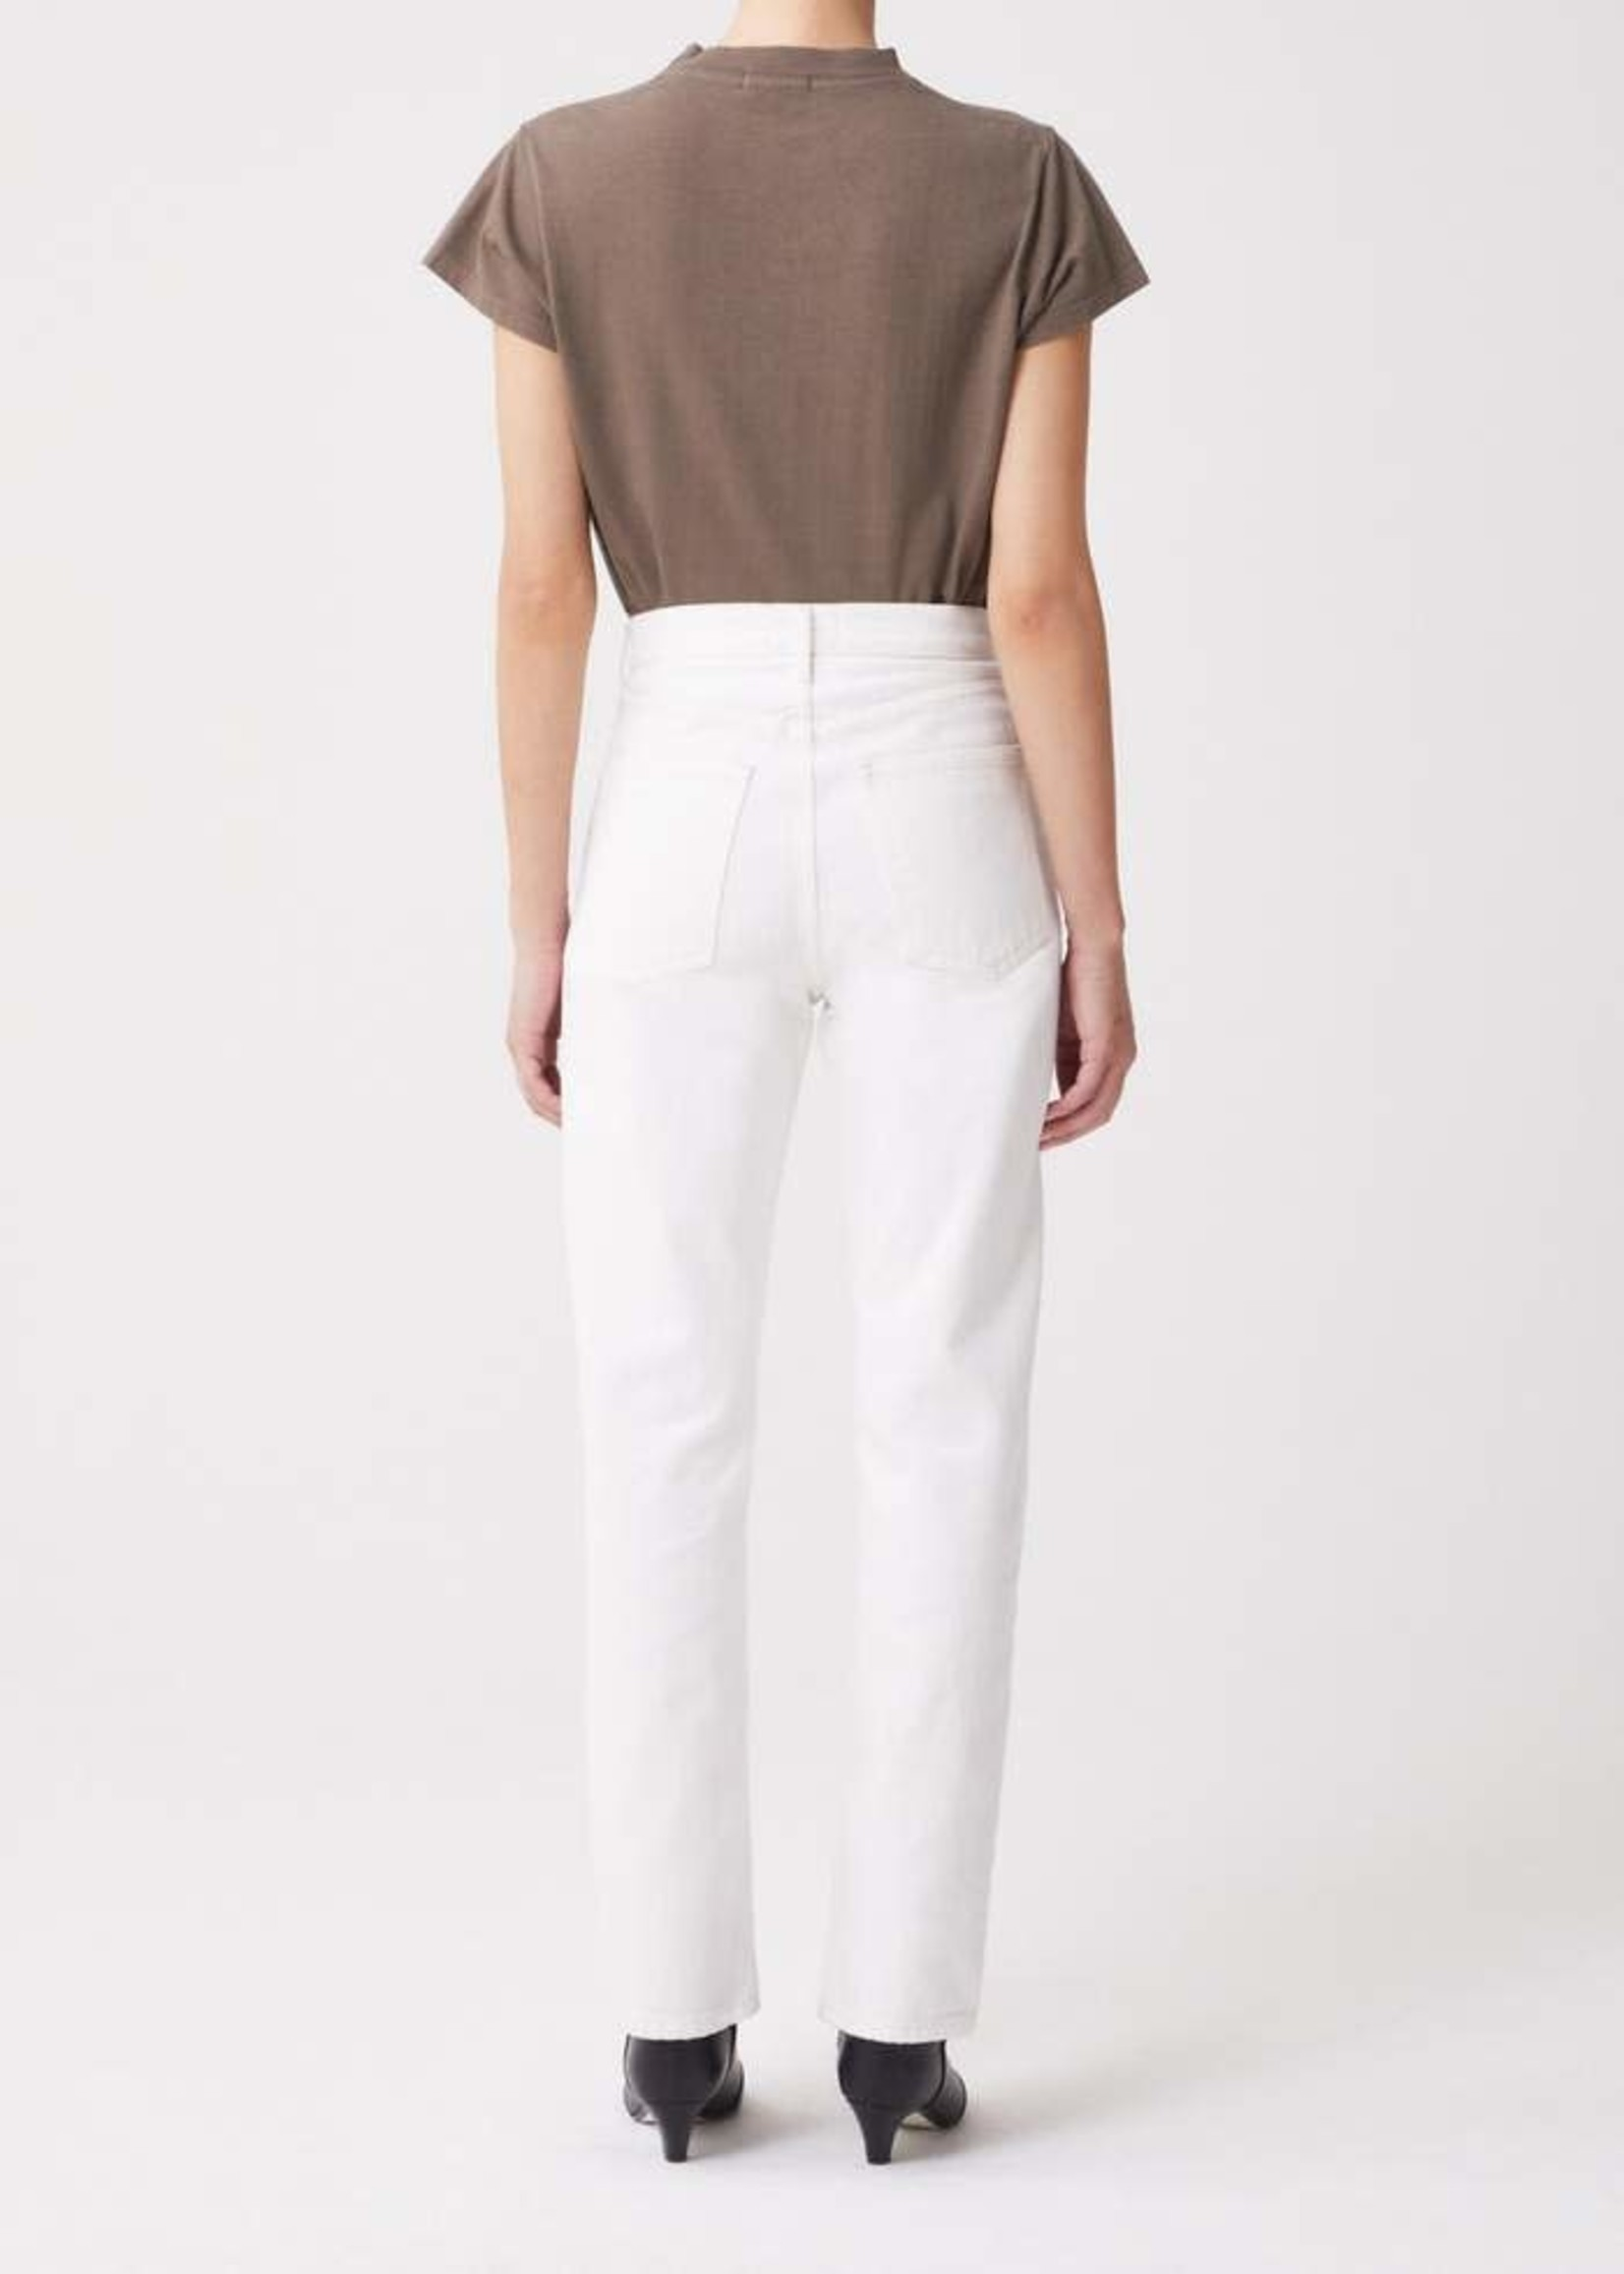 AGOLDE ANIKA CAP SLEEVE MOCK NECK T-SHIRT IN Chocolate CHIP